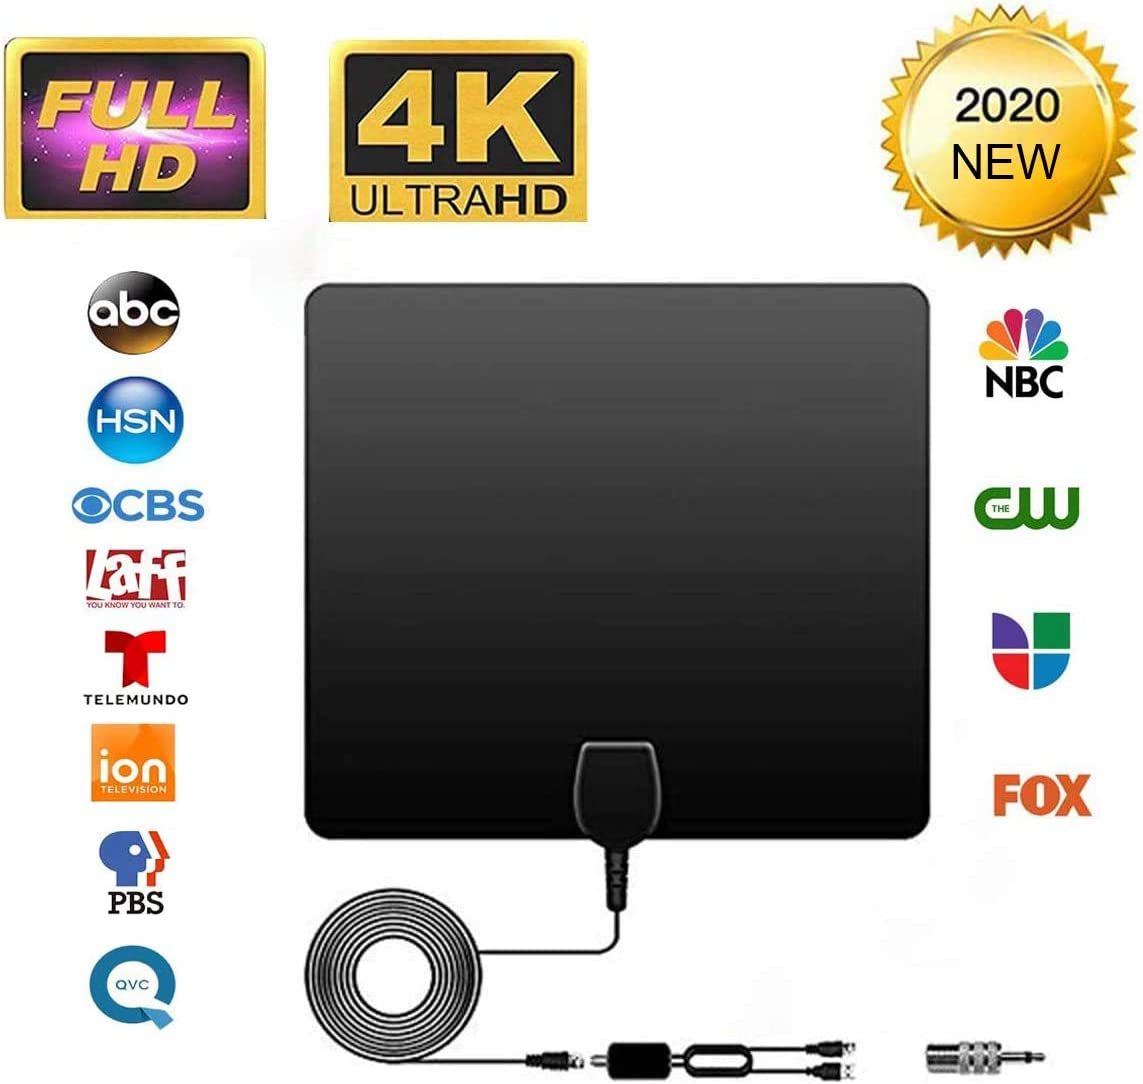 TV Antenna - HDTV Antenna Indoor Support 4K 1080P,VHF UHF Freeview Channel Antenna with Adjustable Amplifier Signal Intensifier Digital Antenna for 60-100 Miles Range-Free Channel Viewing